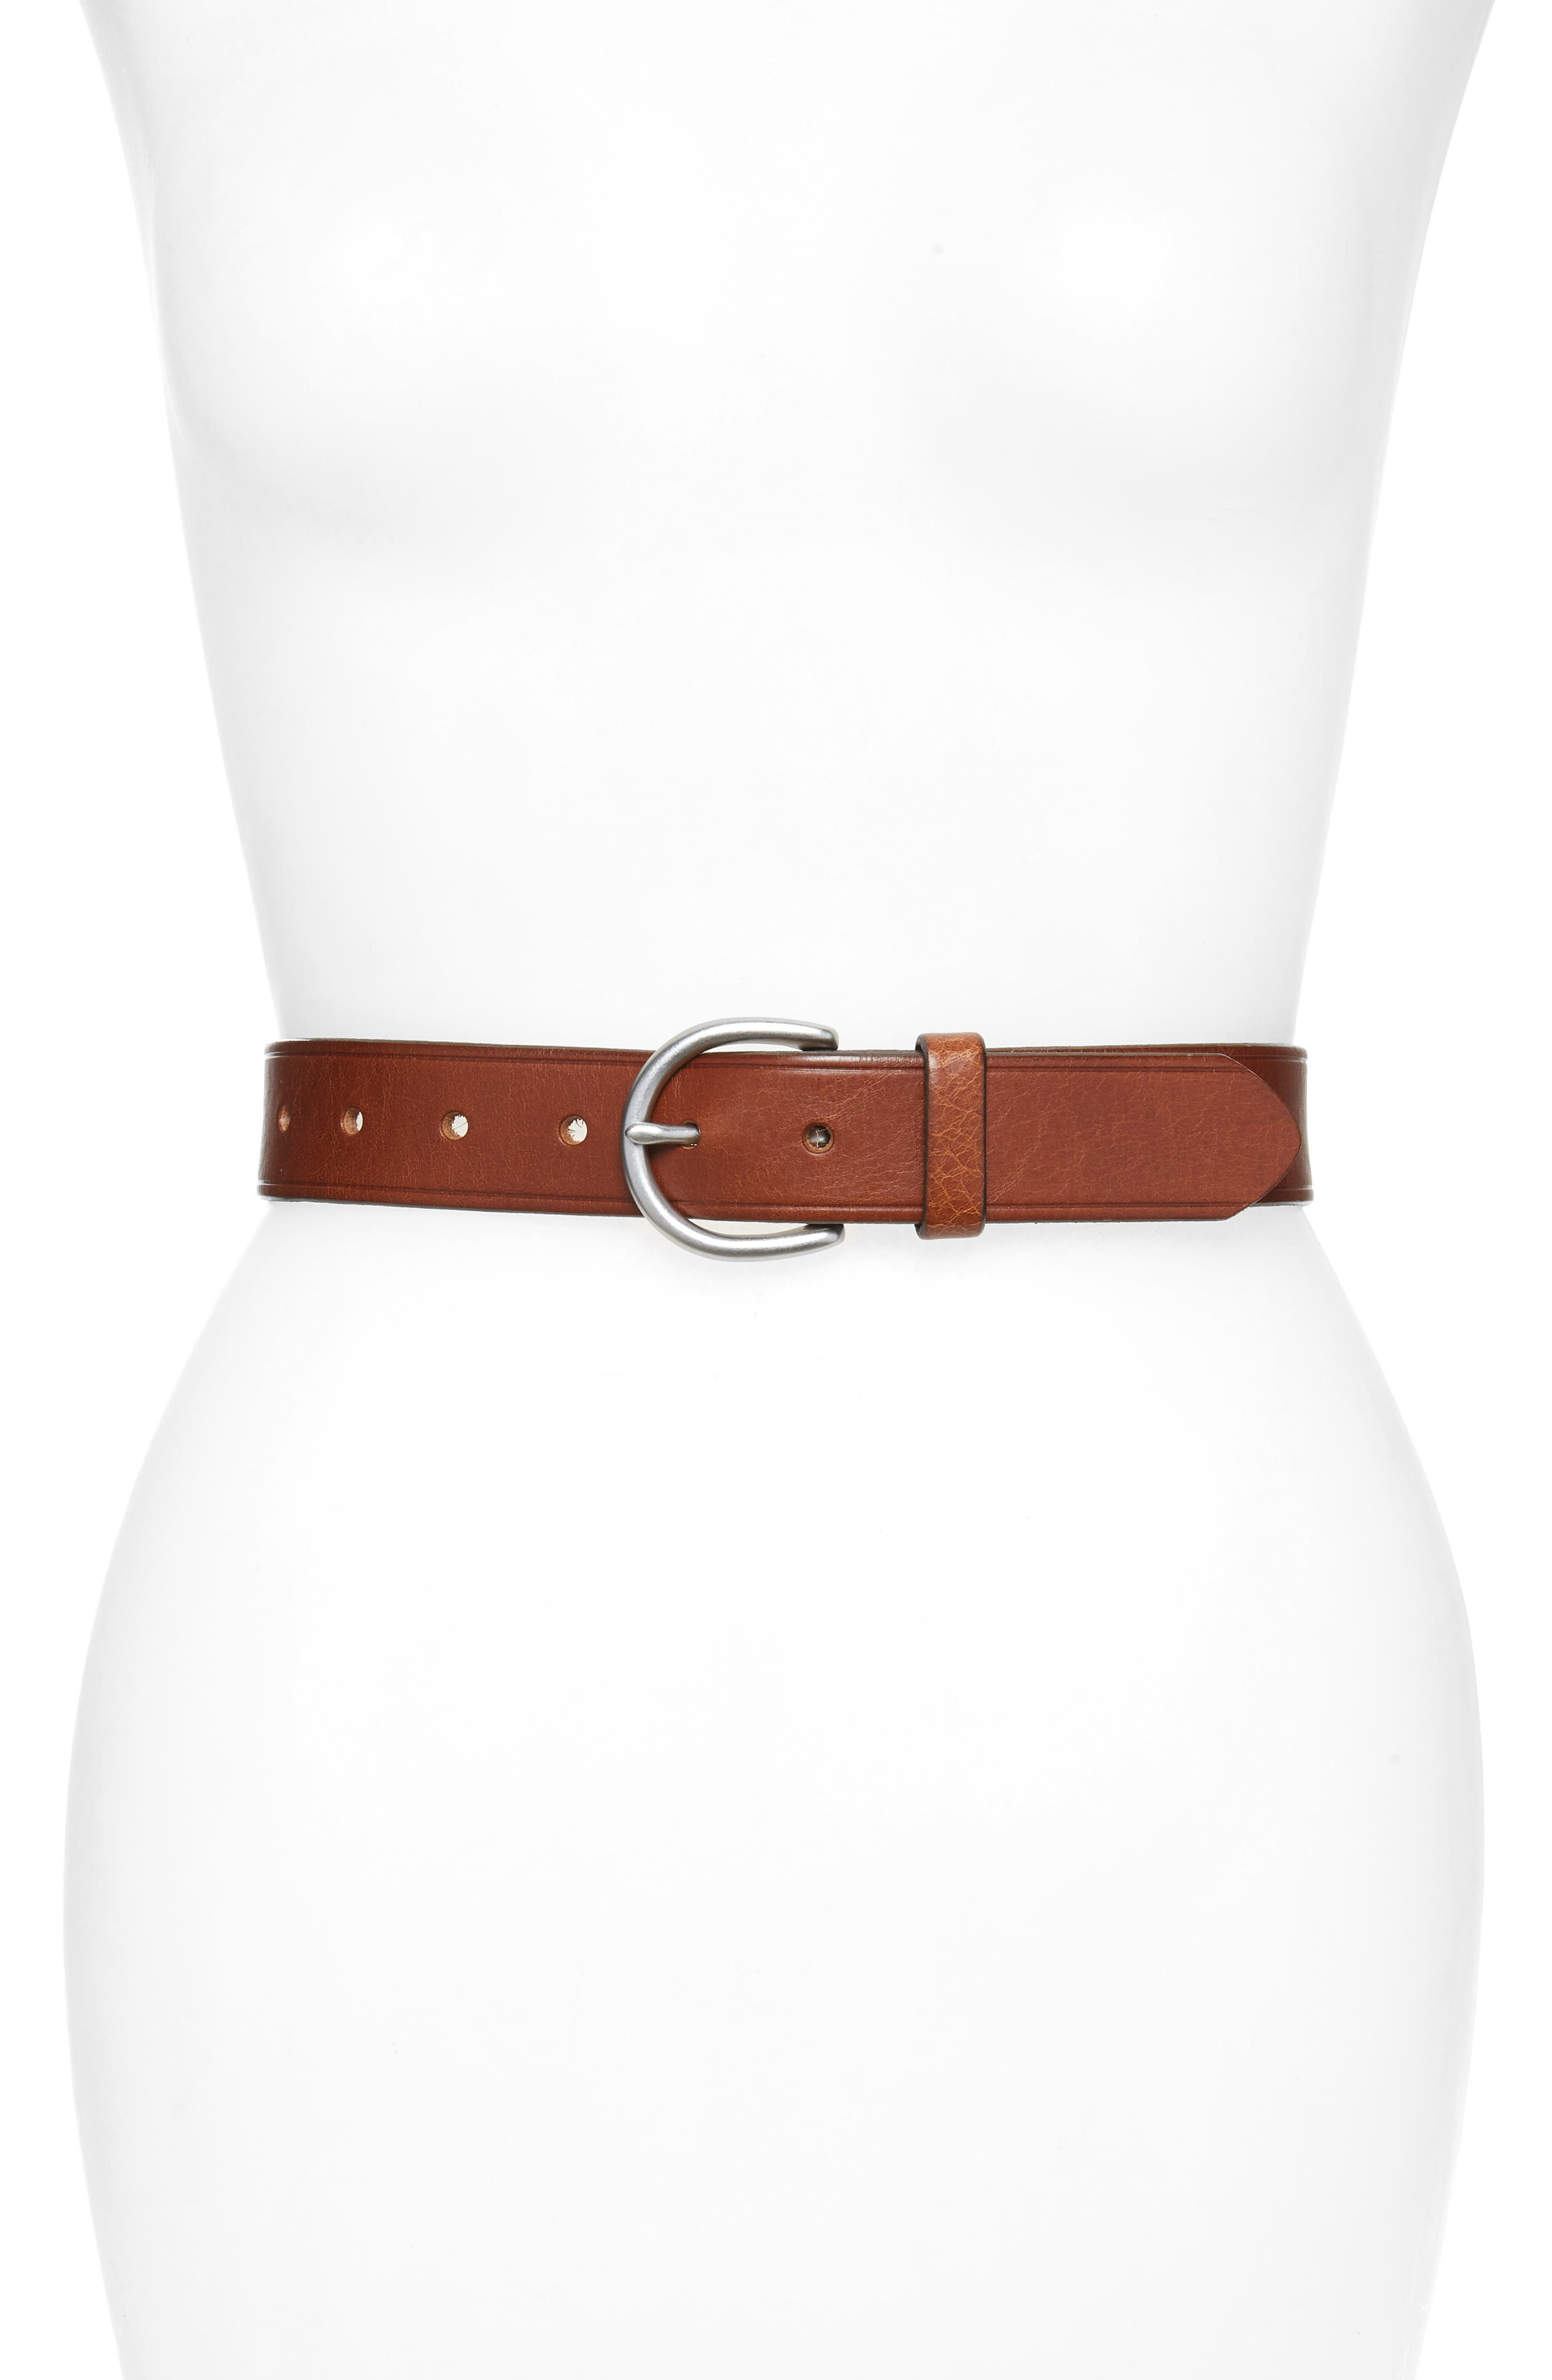 High Quality Trending Women/'s Genuine Leather Belts Square